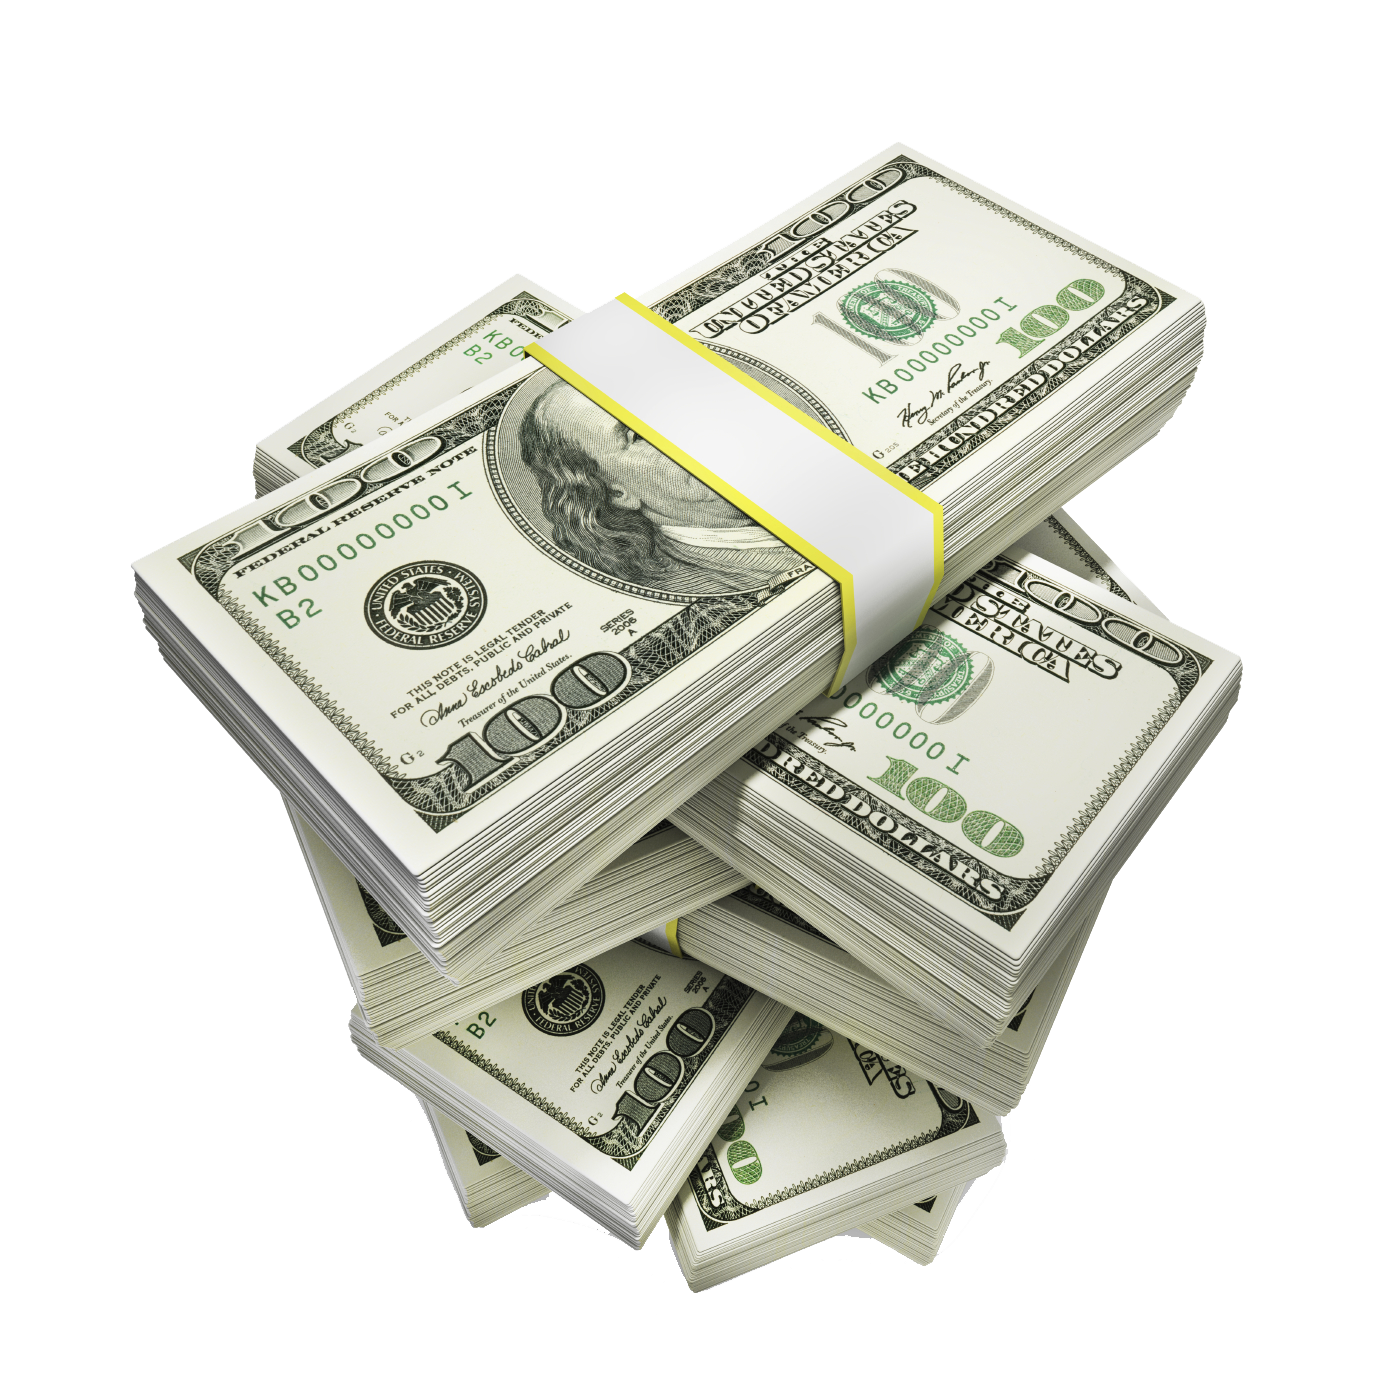 Contest Money Photography Royalty-Free Will Stacks Stock PNG Image